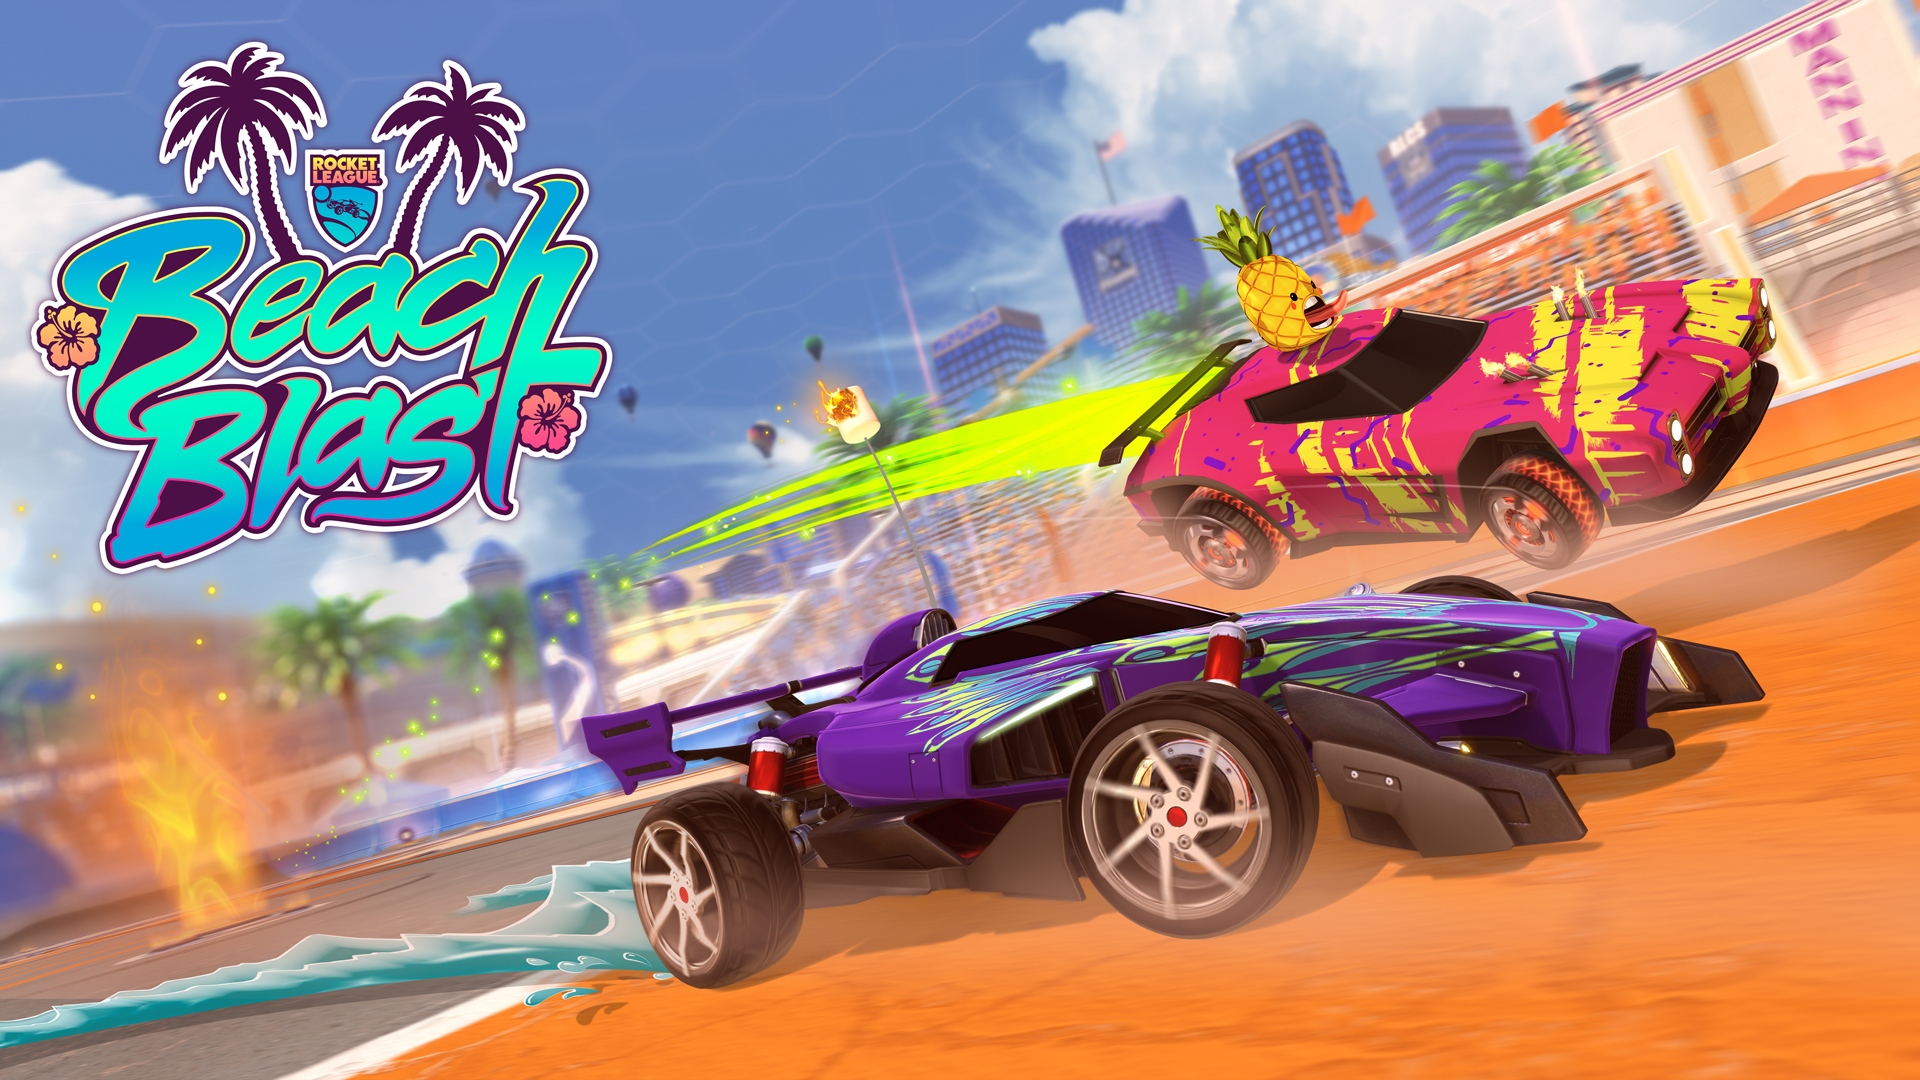 Beach Blast Event Starts June 11 | Rocket League® - Official Site